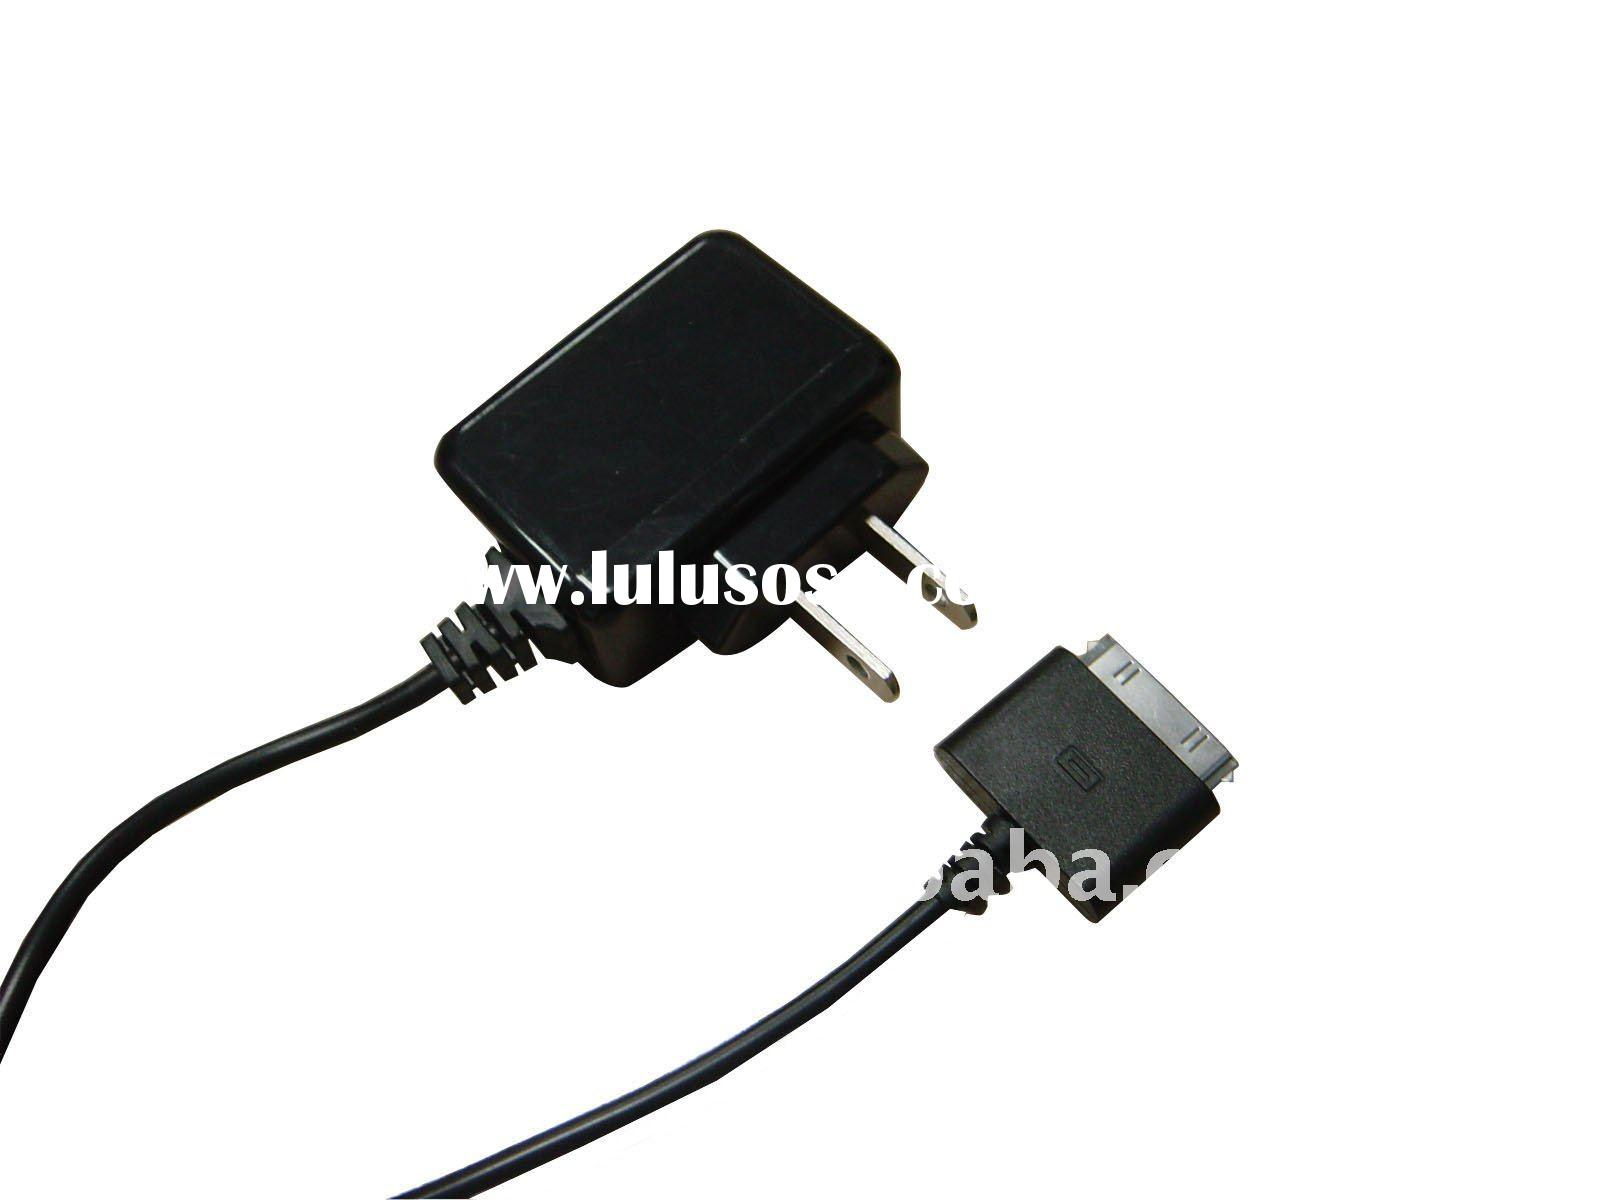 AC/DC adapter for mobile phone